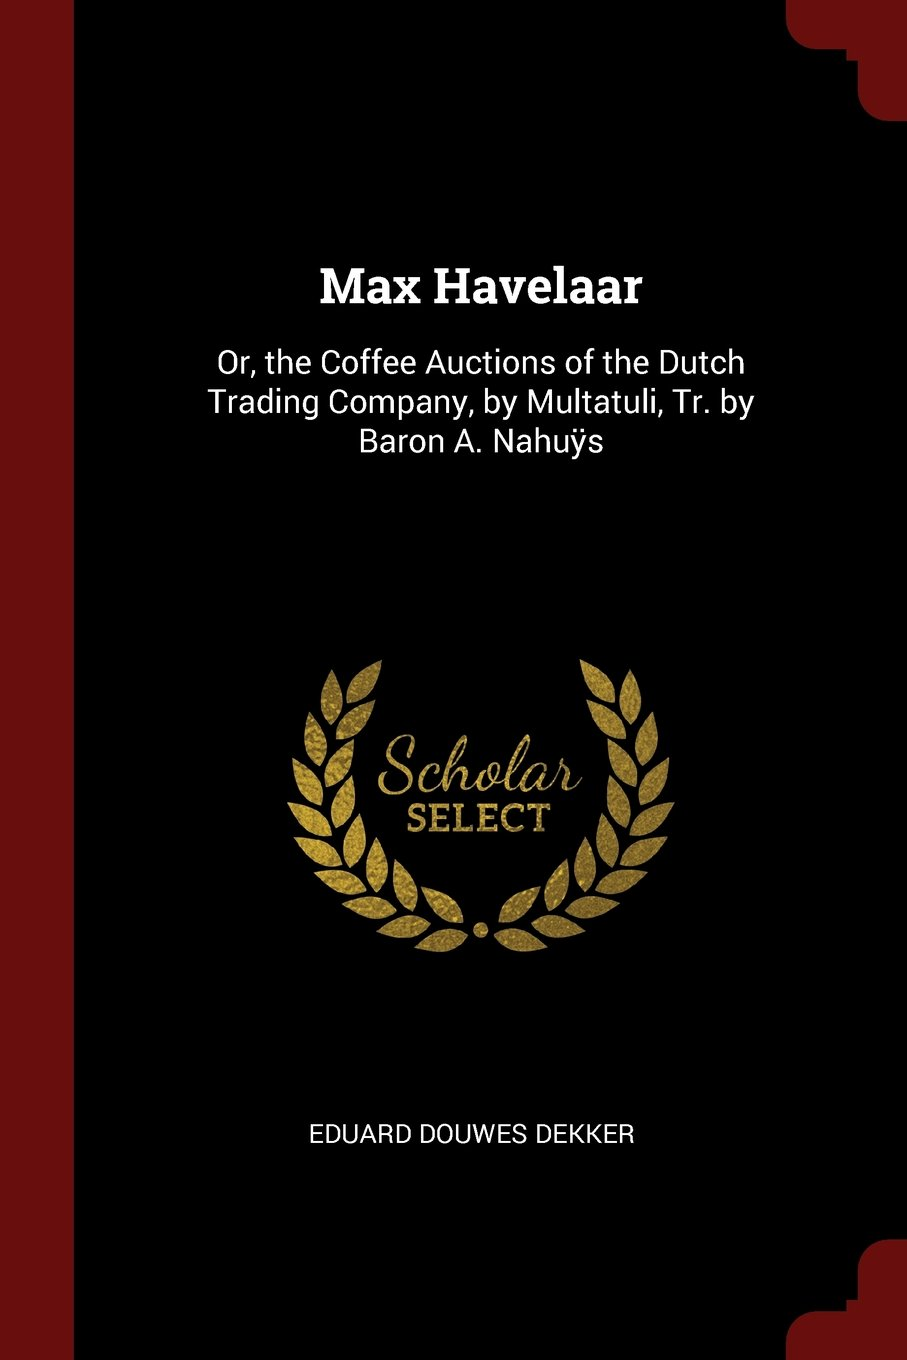 Max Havelaar: Or, the Coffee Auctions of the Dutch Trading Company, by Multatuli, Tr. by Baron A. Nahuÿs pdf